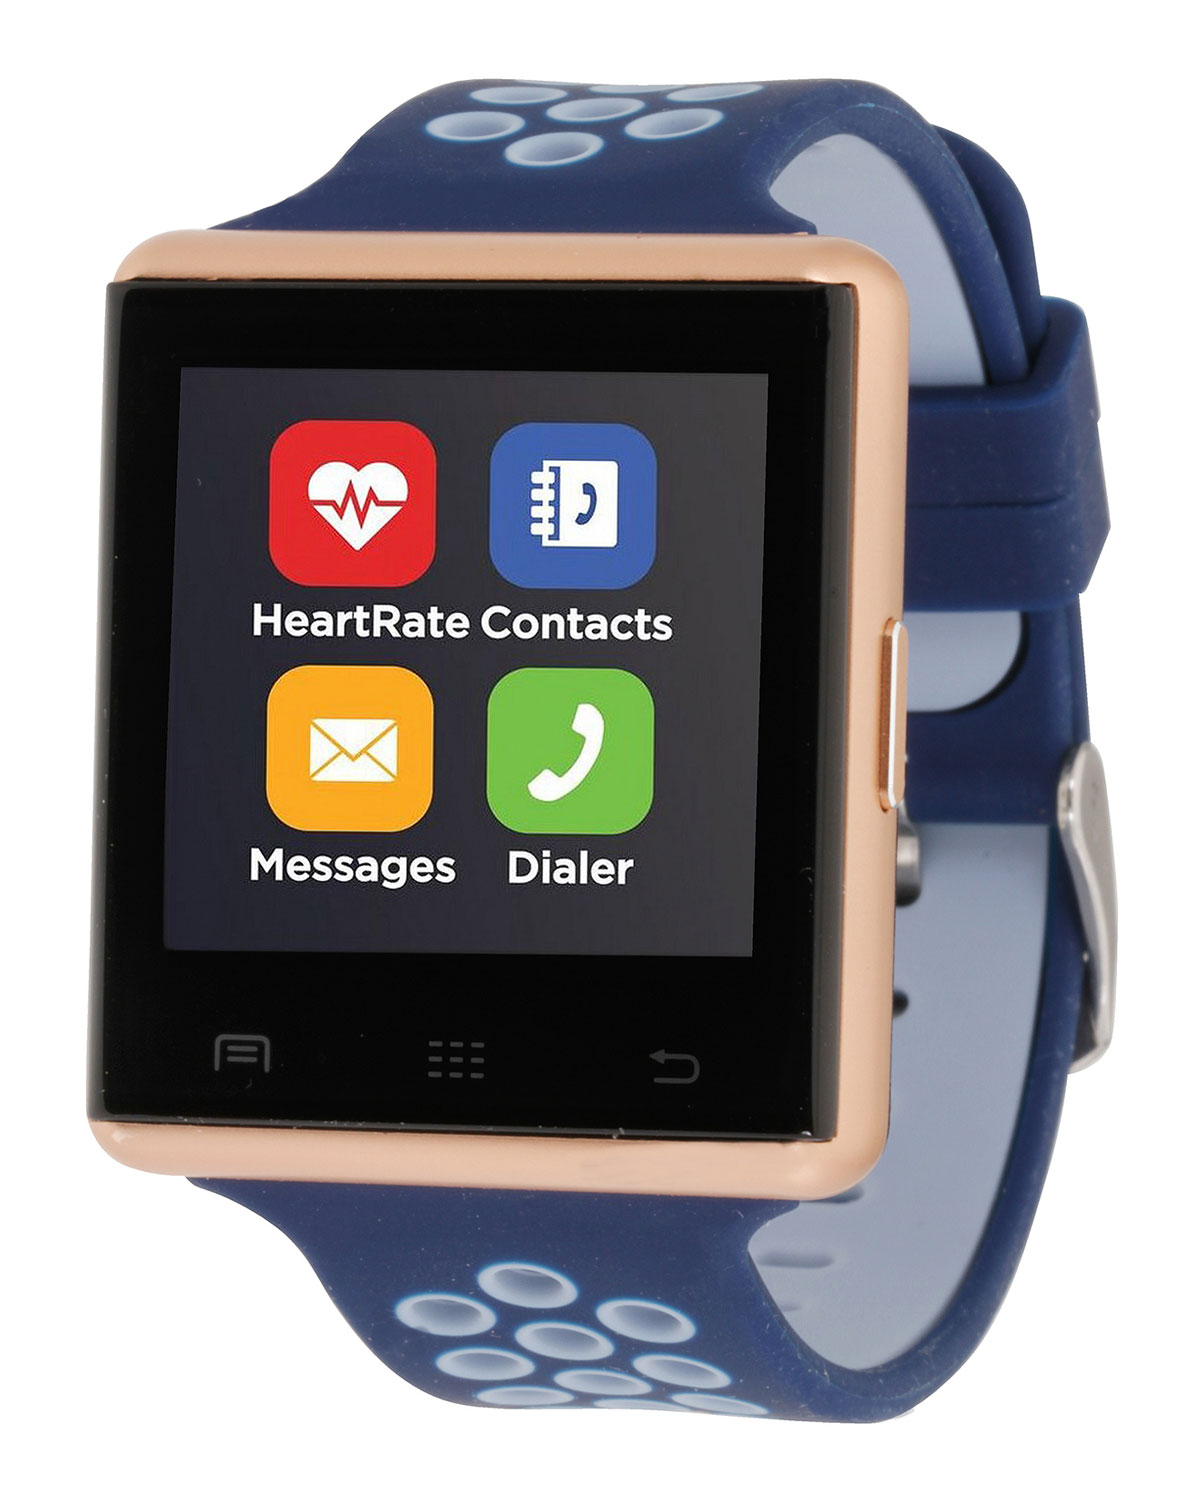 Itouch Watch Air 2 User Manual - networkingyellow